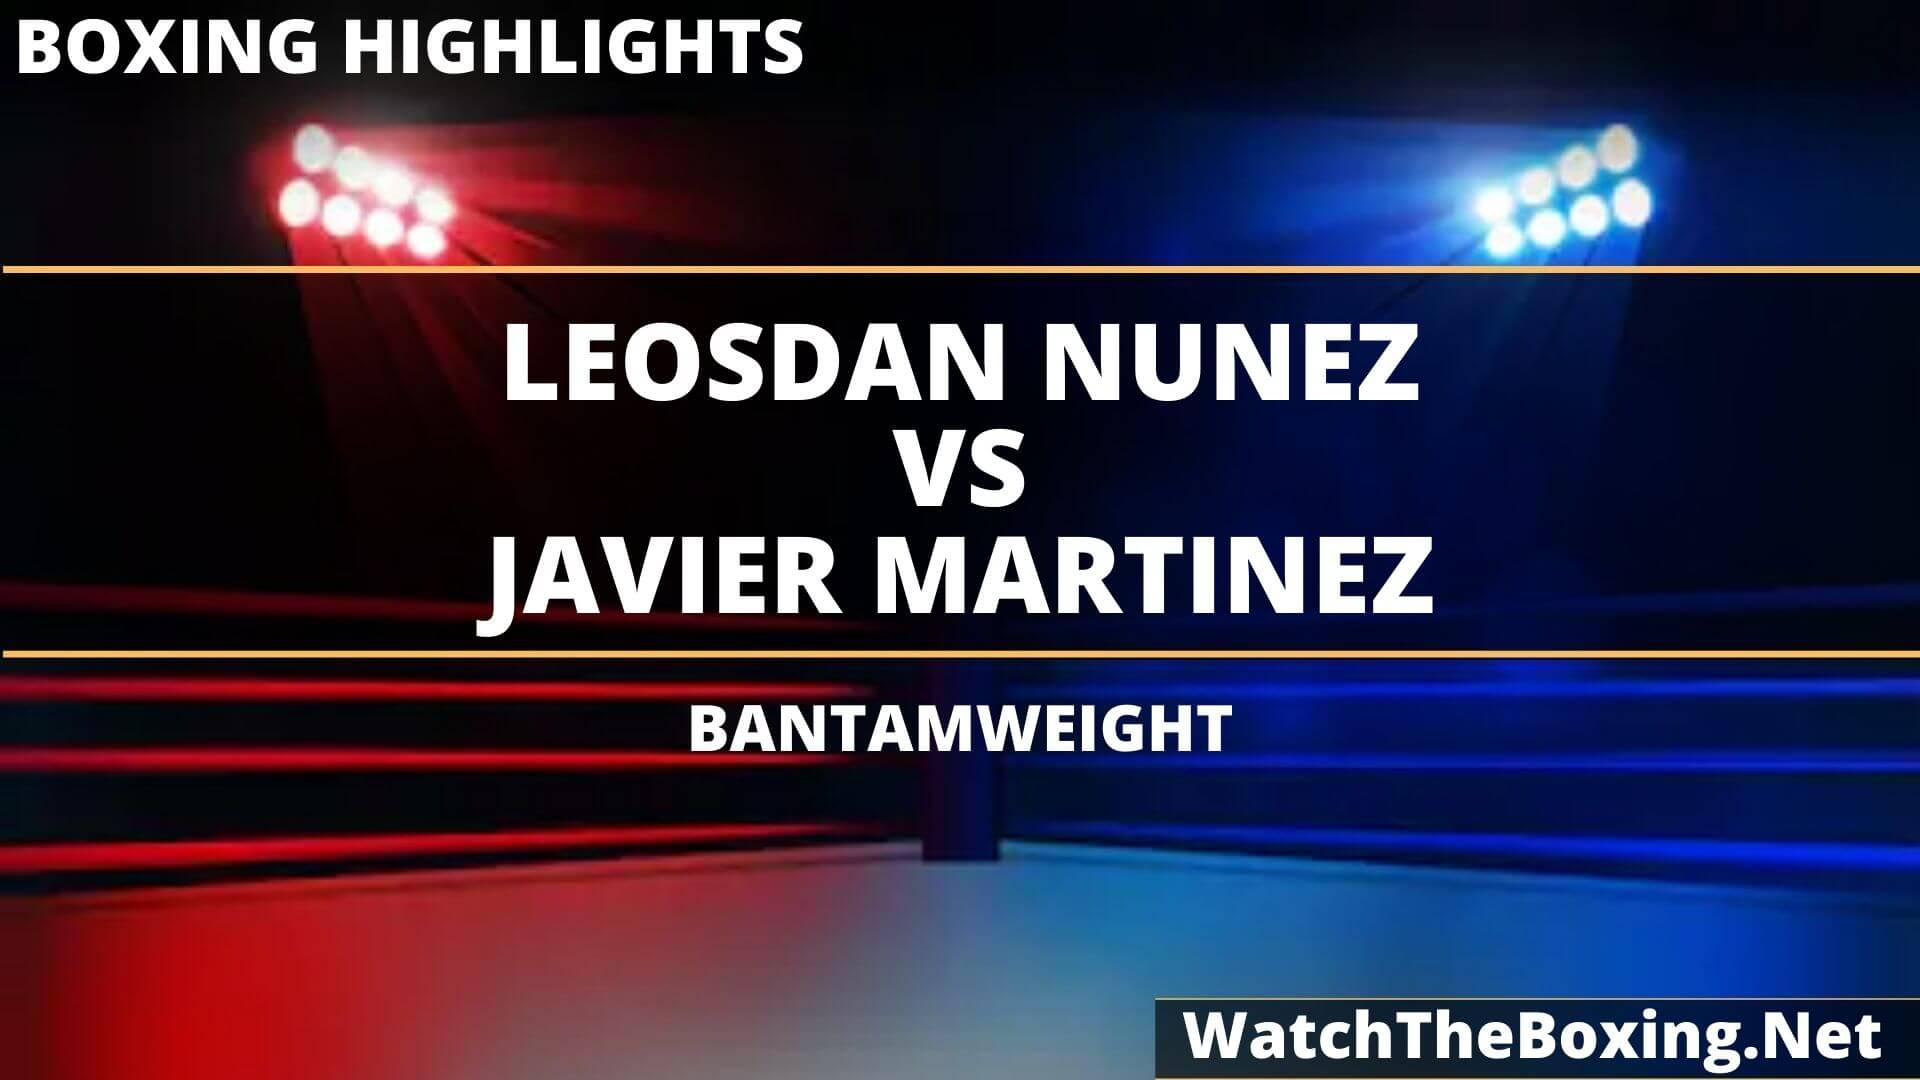 Leosdan Nunez Vs Javier Martinez Highlights 2020